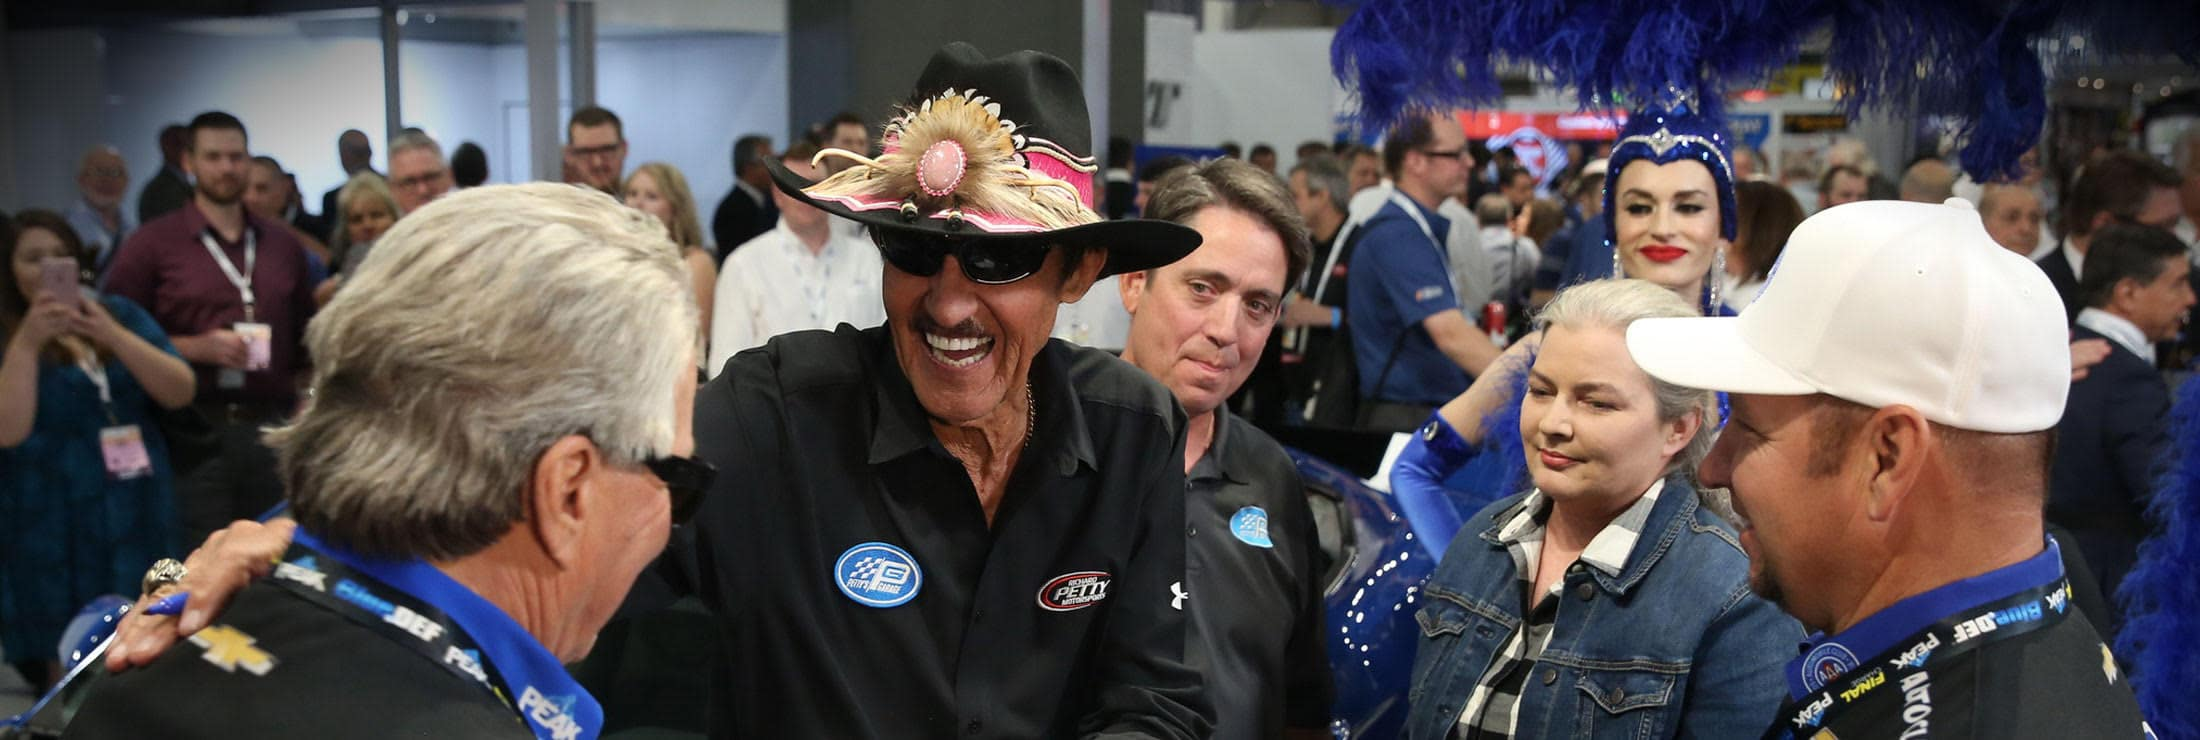 "NASCAR Hall of Famer Richard Petty, ""The King"", greeting fans."